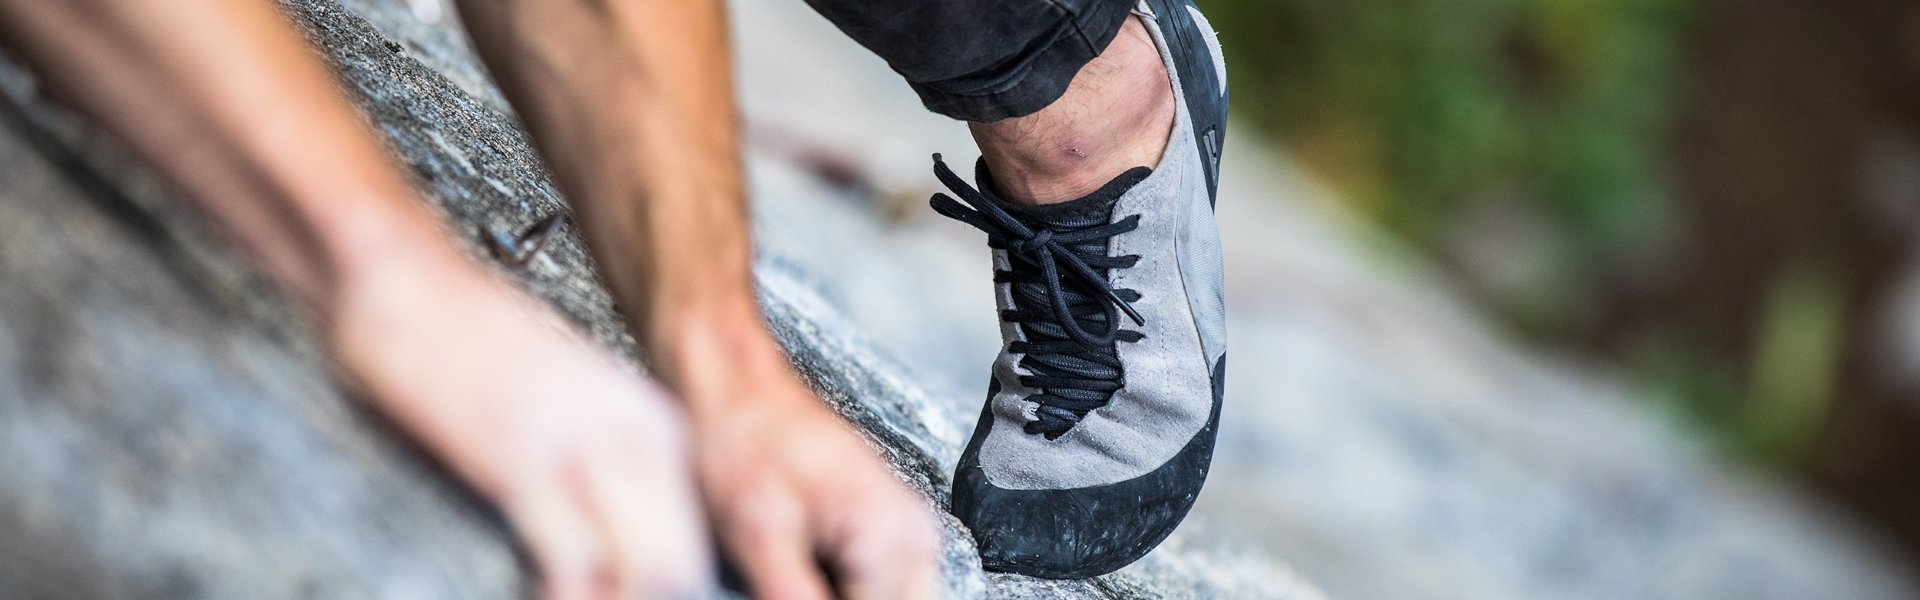 Best Beginner Climbing Shoes Reviewed in Detail